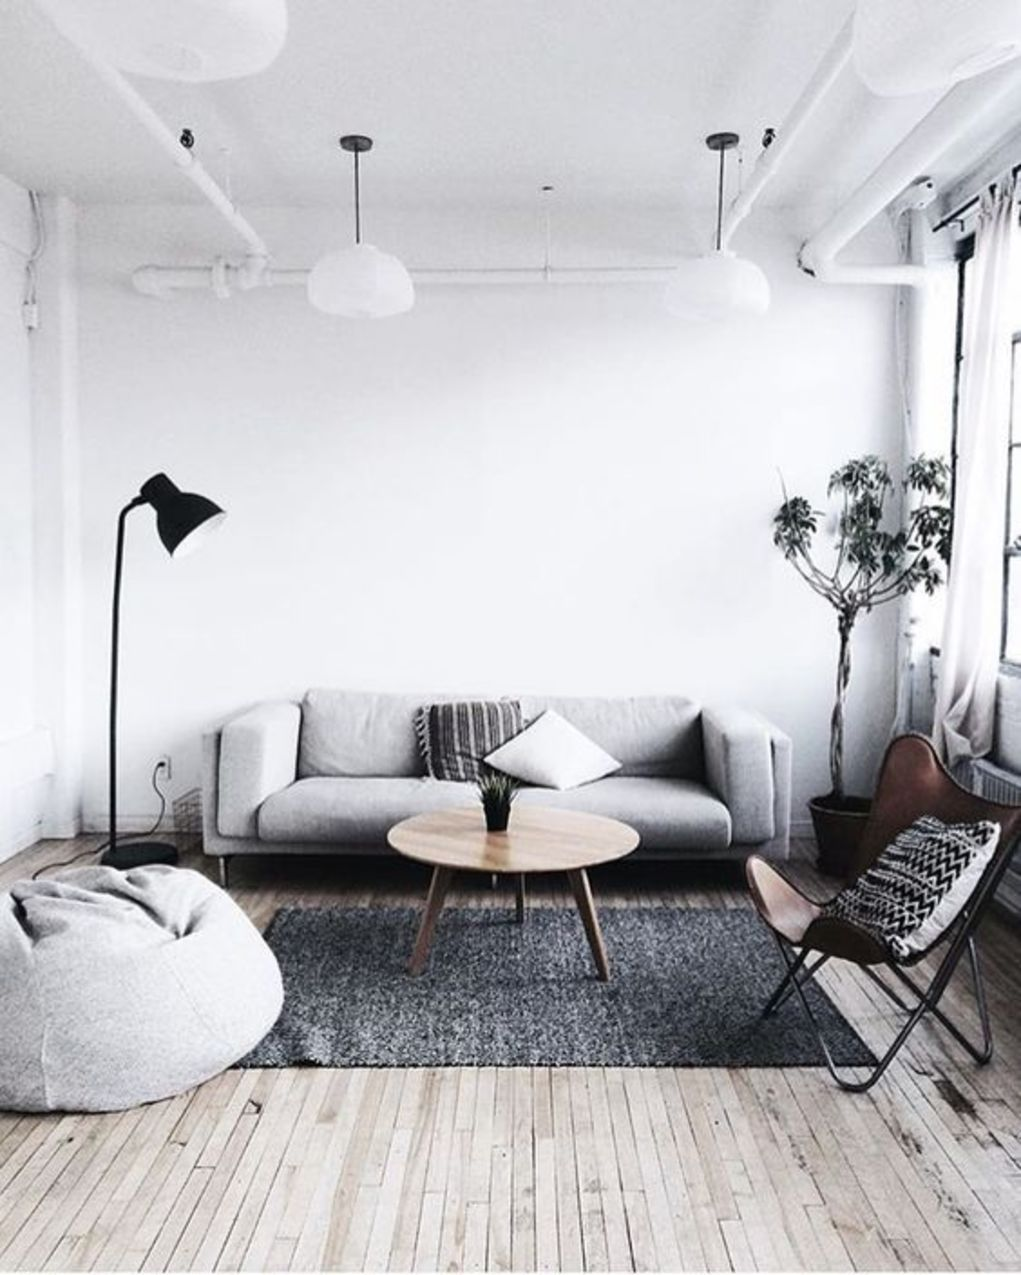 Living Room Decor Inspiration: Minimal Interior Design Inspiration